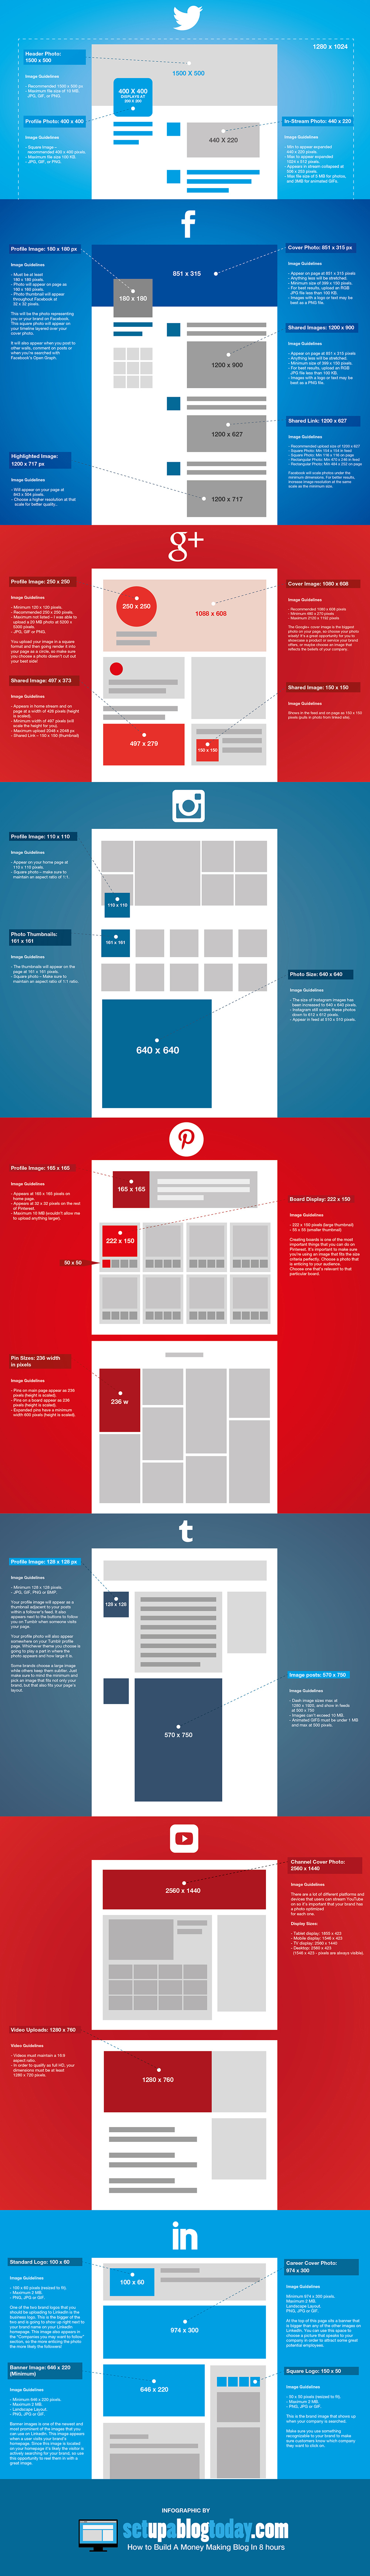 social-media-image-size-cheat-sheet-2015-blog